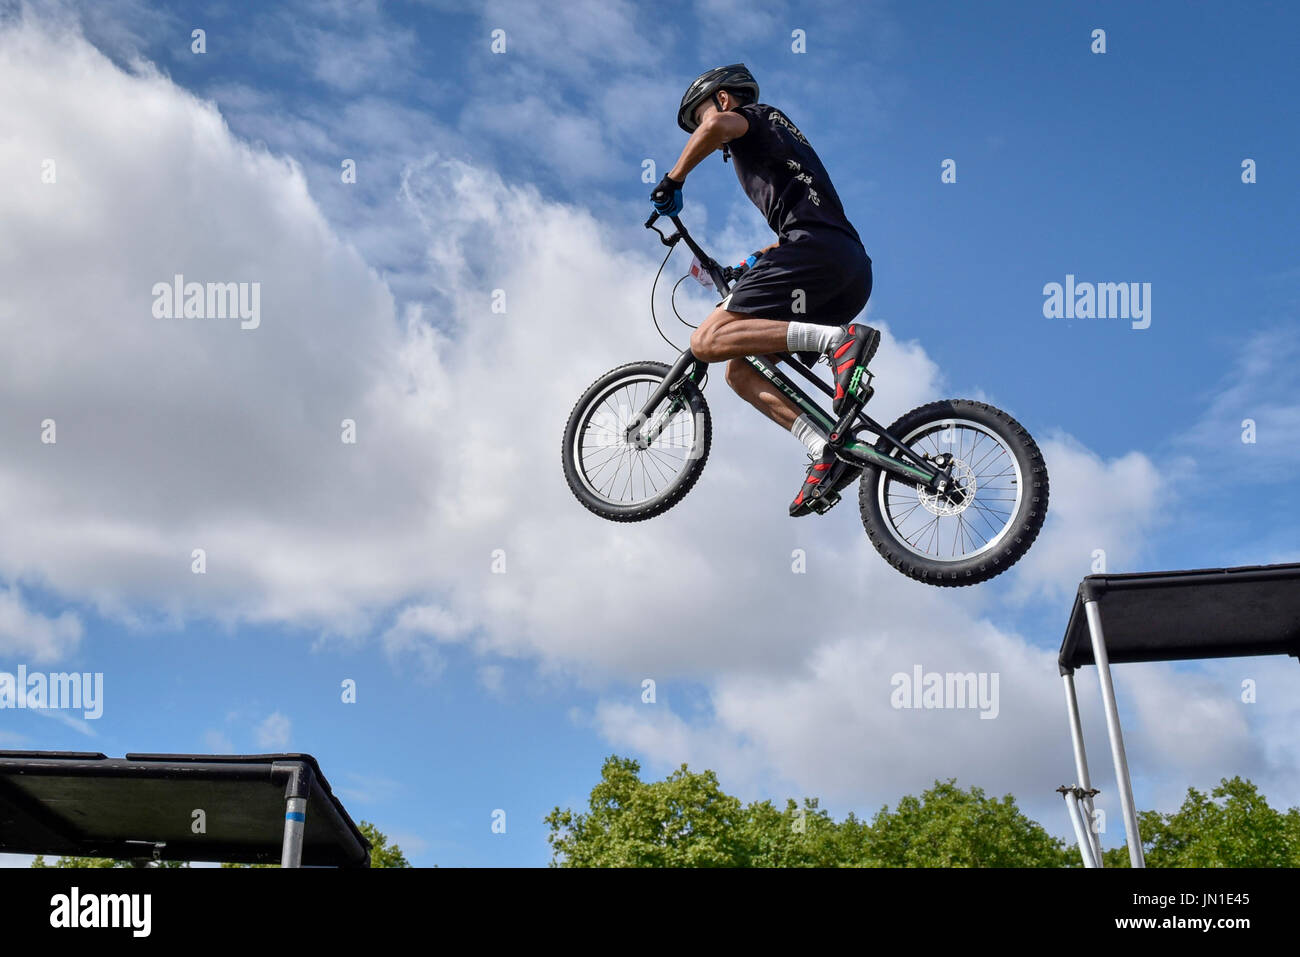 London, UK.  29 July 2017.  Members of the Andrei Burton stunt riding team take part in the London Trials Championships in Green Park tackling a course made up of tricky obstacles.  The event is part of Prudential RideLondon FreeCycle, a three day celebration of cycling taking place in the capital with over 100,000 people participating over the weekend.   Credit: Stephen Chung / Alamy Live News - Stock Image